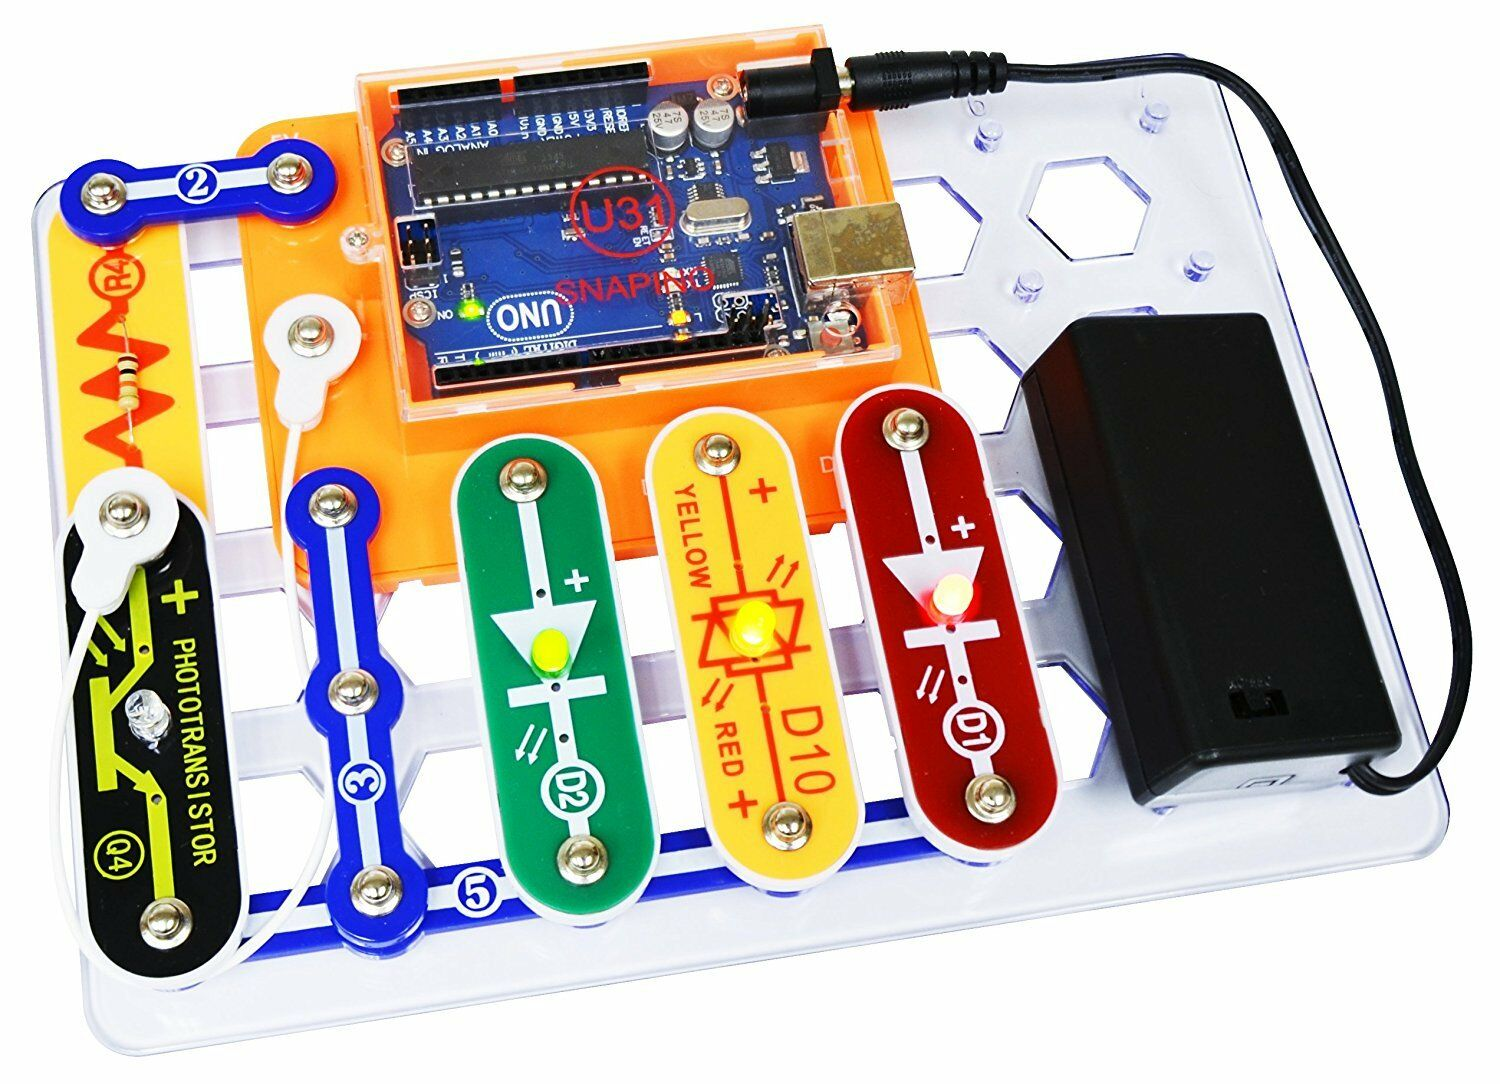 2 Pack Snapino Snap Circuits Open Source Coding Arduino Project Kit Elenco Sc750r Student Training Program Is Basically An Norton Secured Powered By Verisign